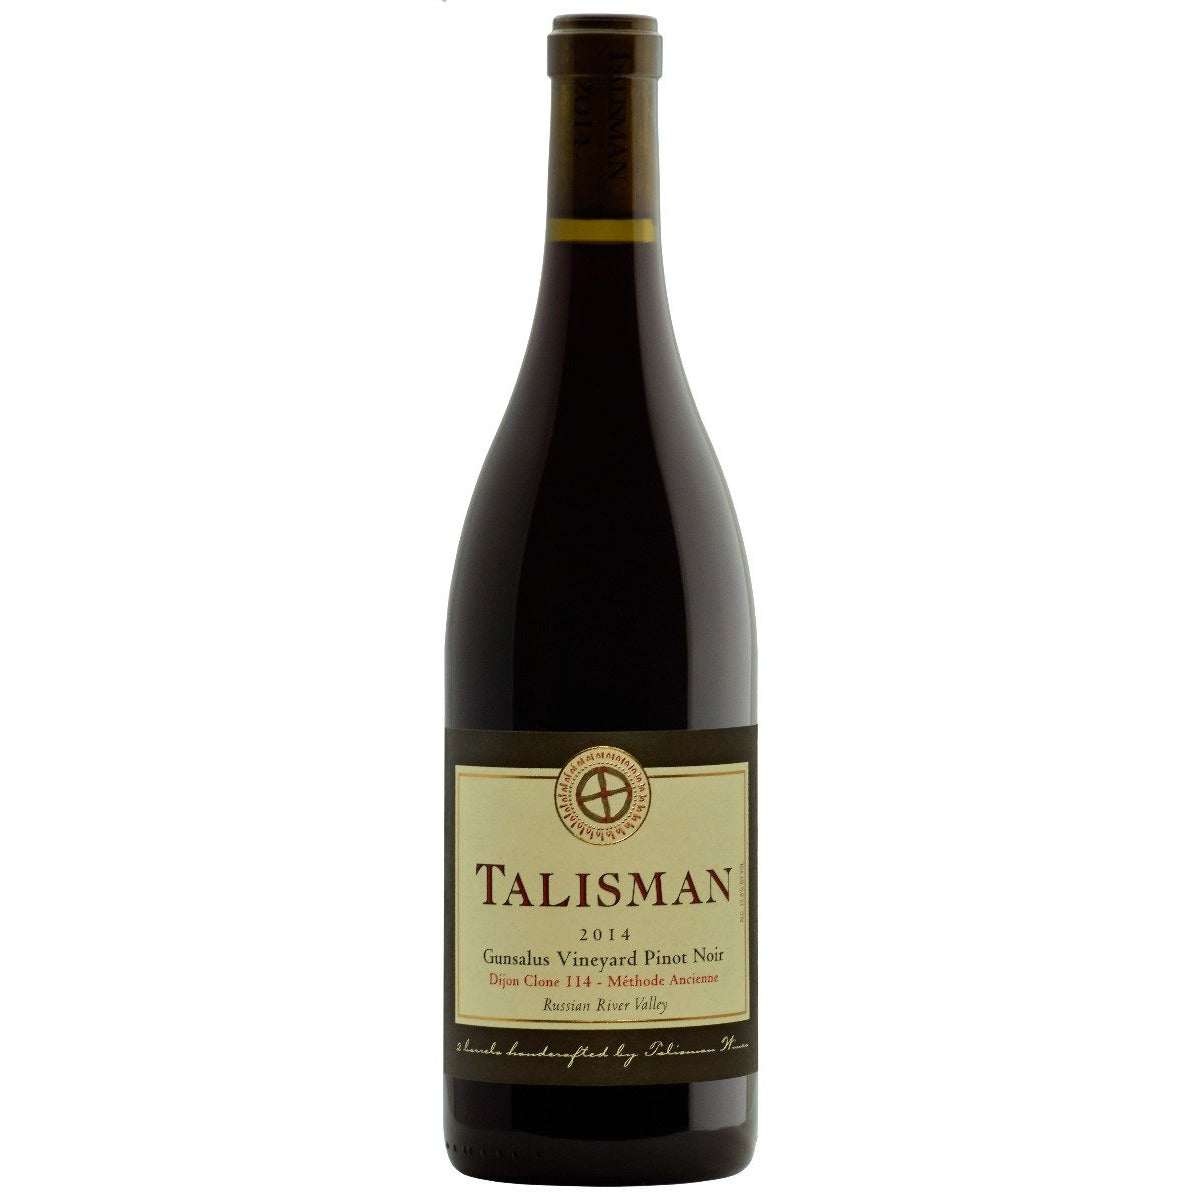 Talisman Gunsalus Vineyard Pinot Noir Russian River Valley (750 ML)